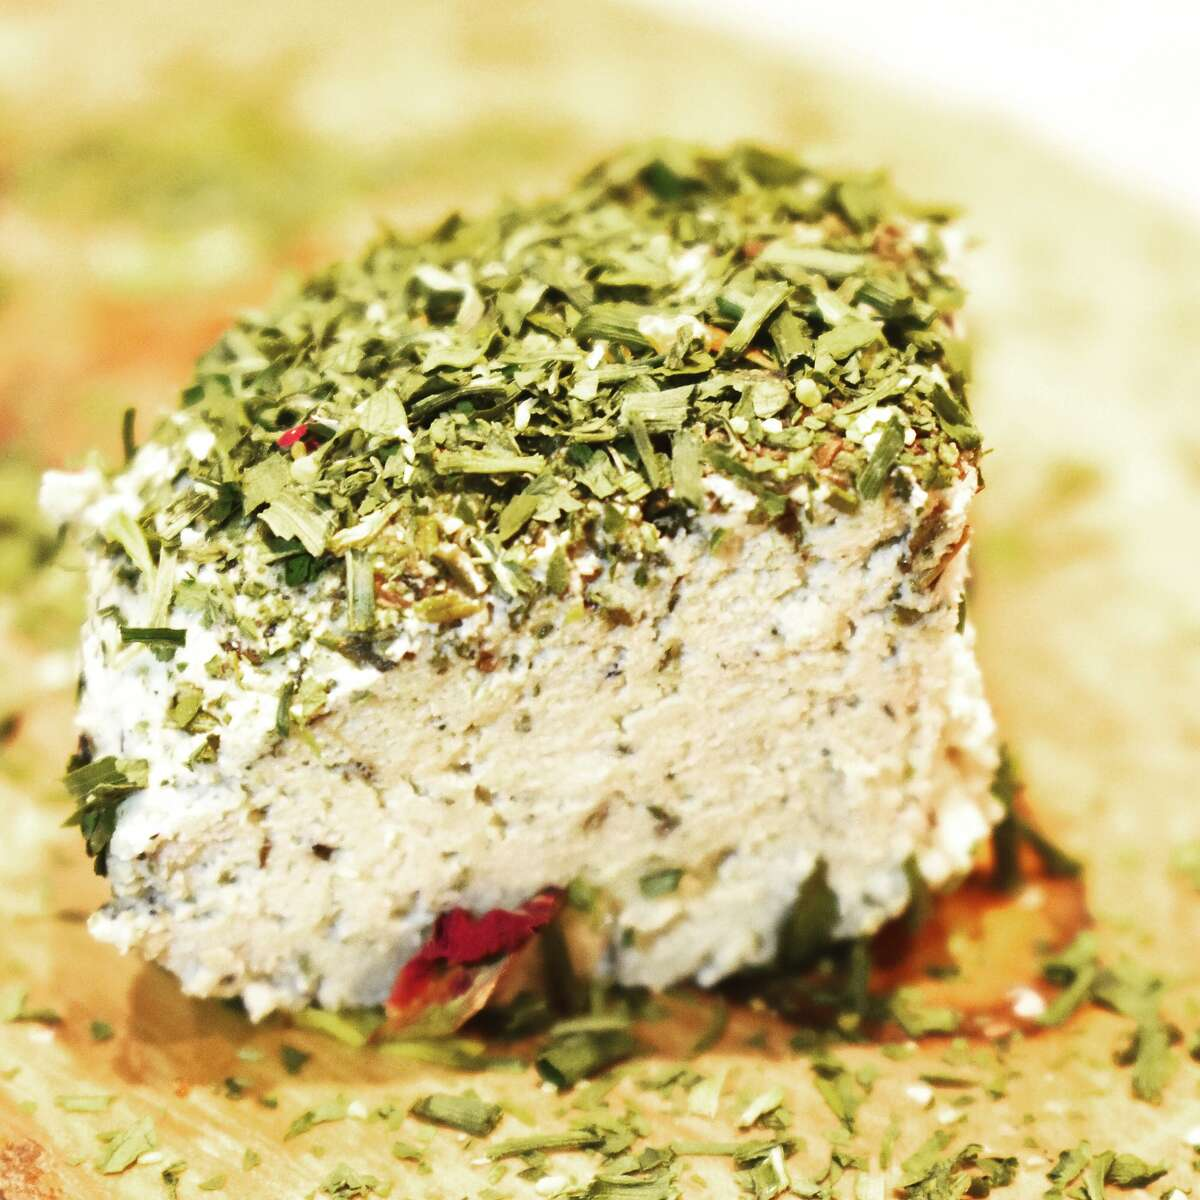 Spero Foods uses sunflower seeds to make its vegan Herbalicious goat cheese.